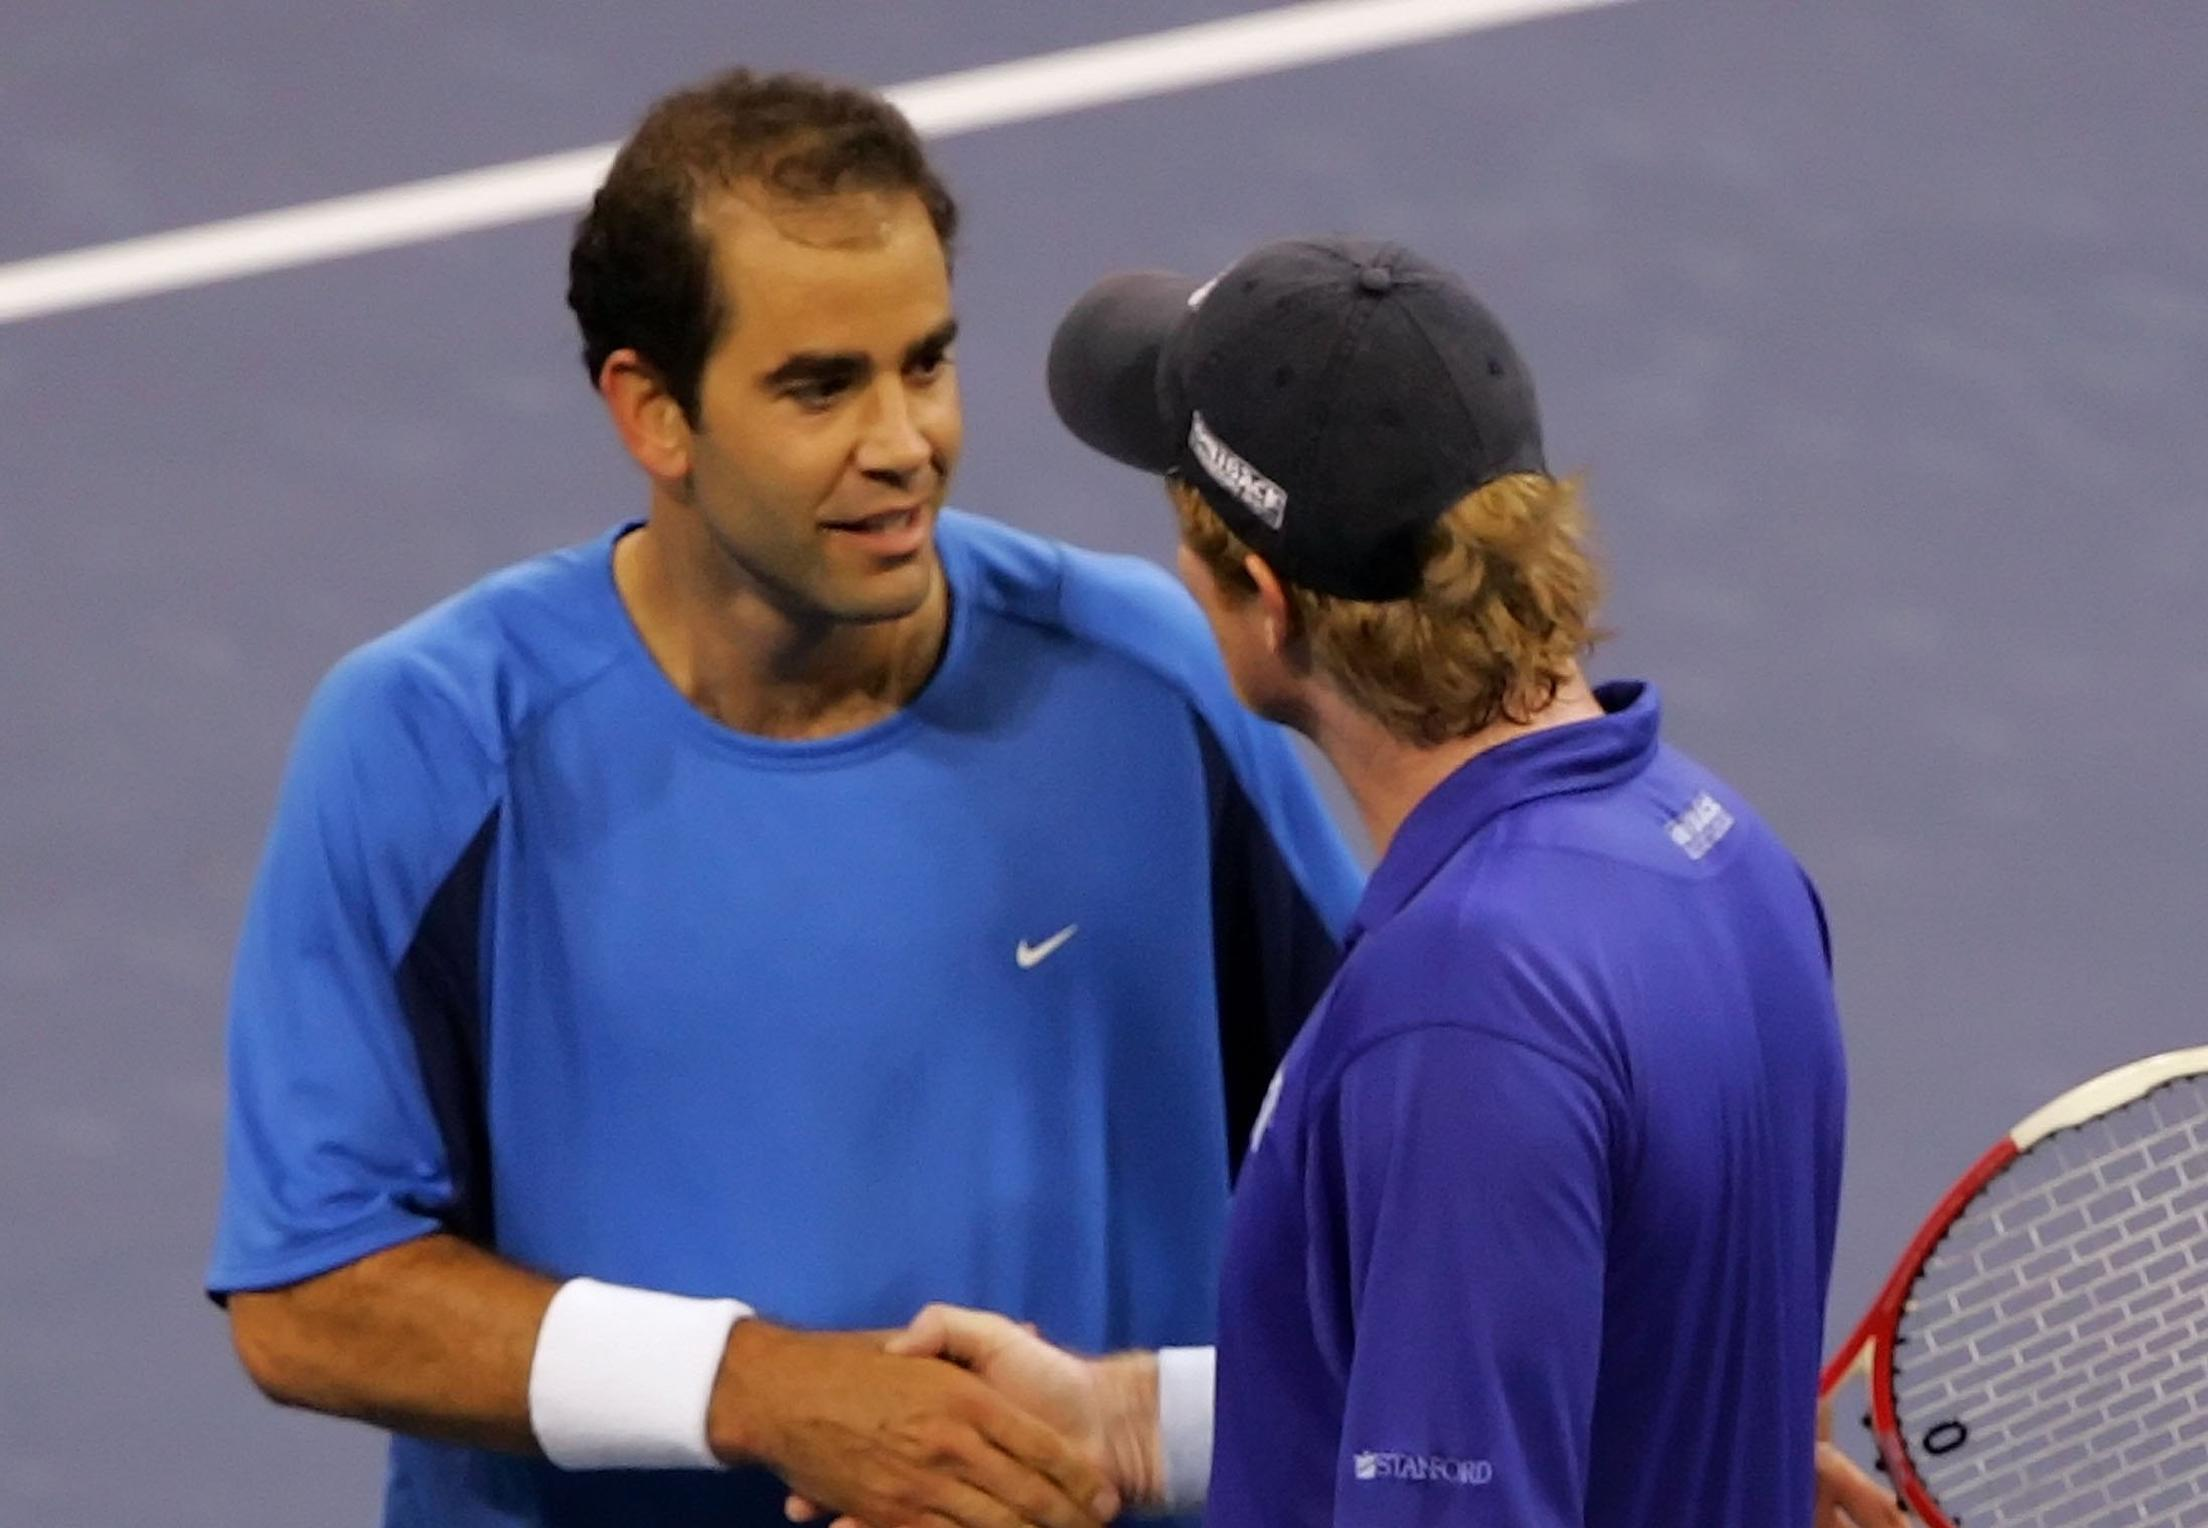 e Sided Rivalry Pete Sampras vs Jim Courier Tennis Now